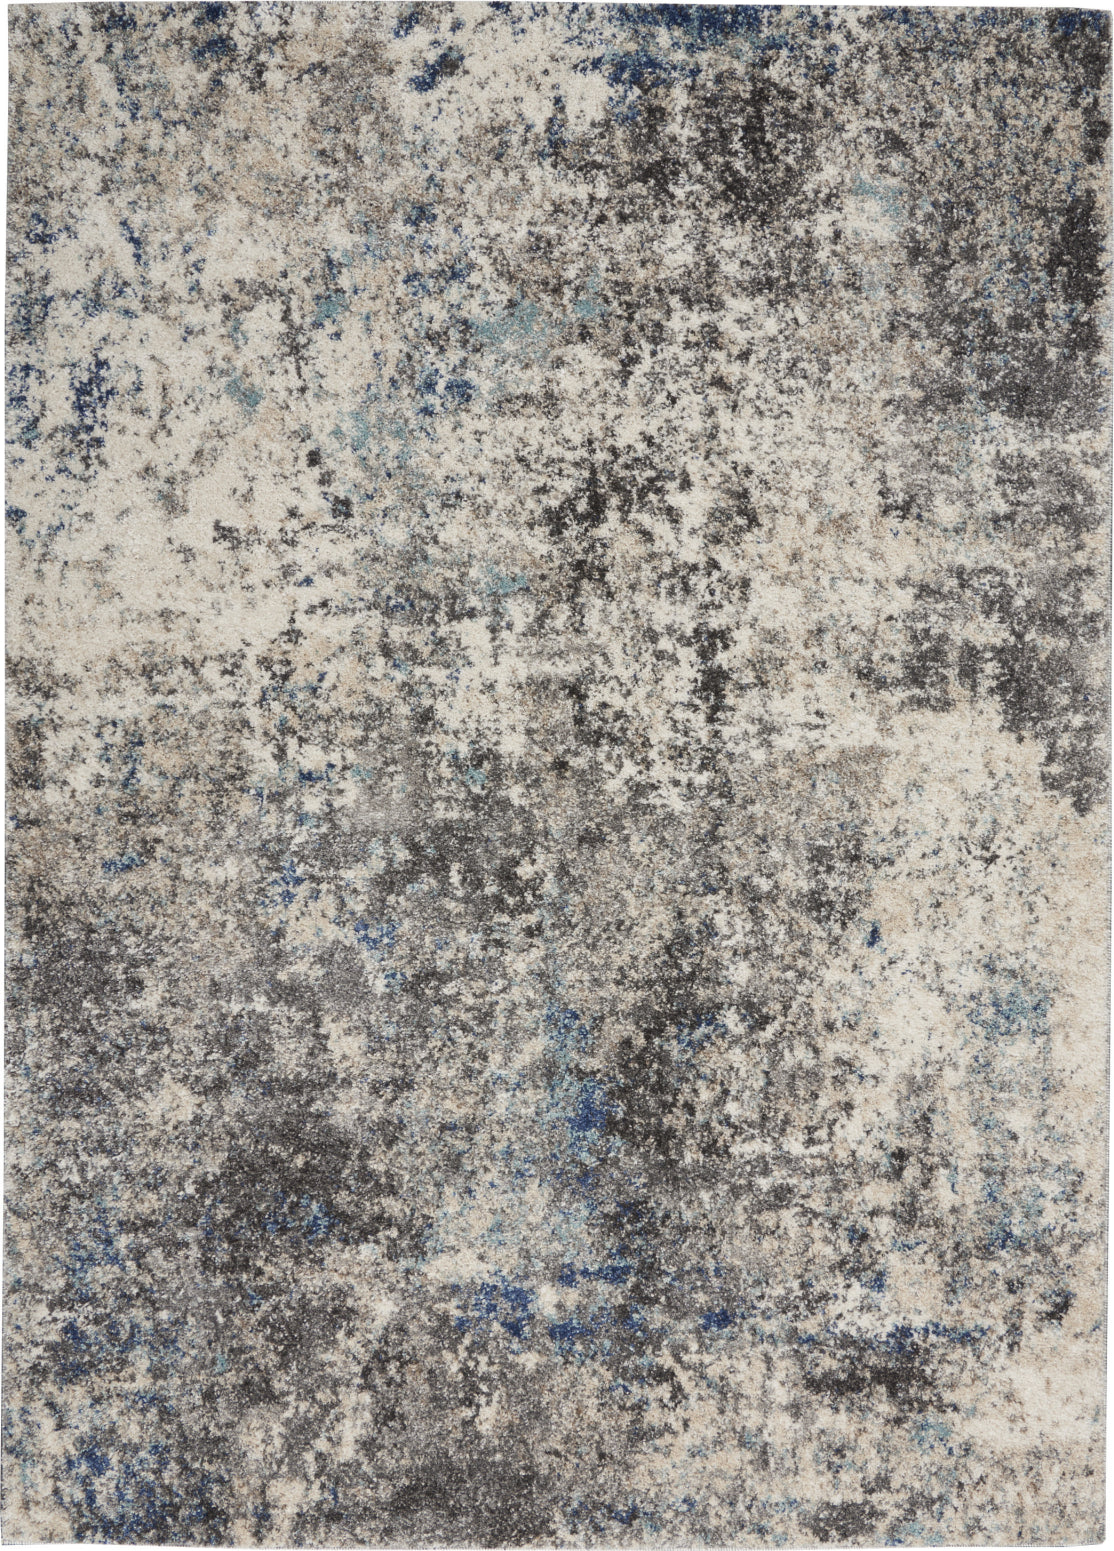 Nourison KI60 Ivory Shore KI61 Dark Grey/Multi Area Rug by Kathy Ireland main image